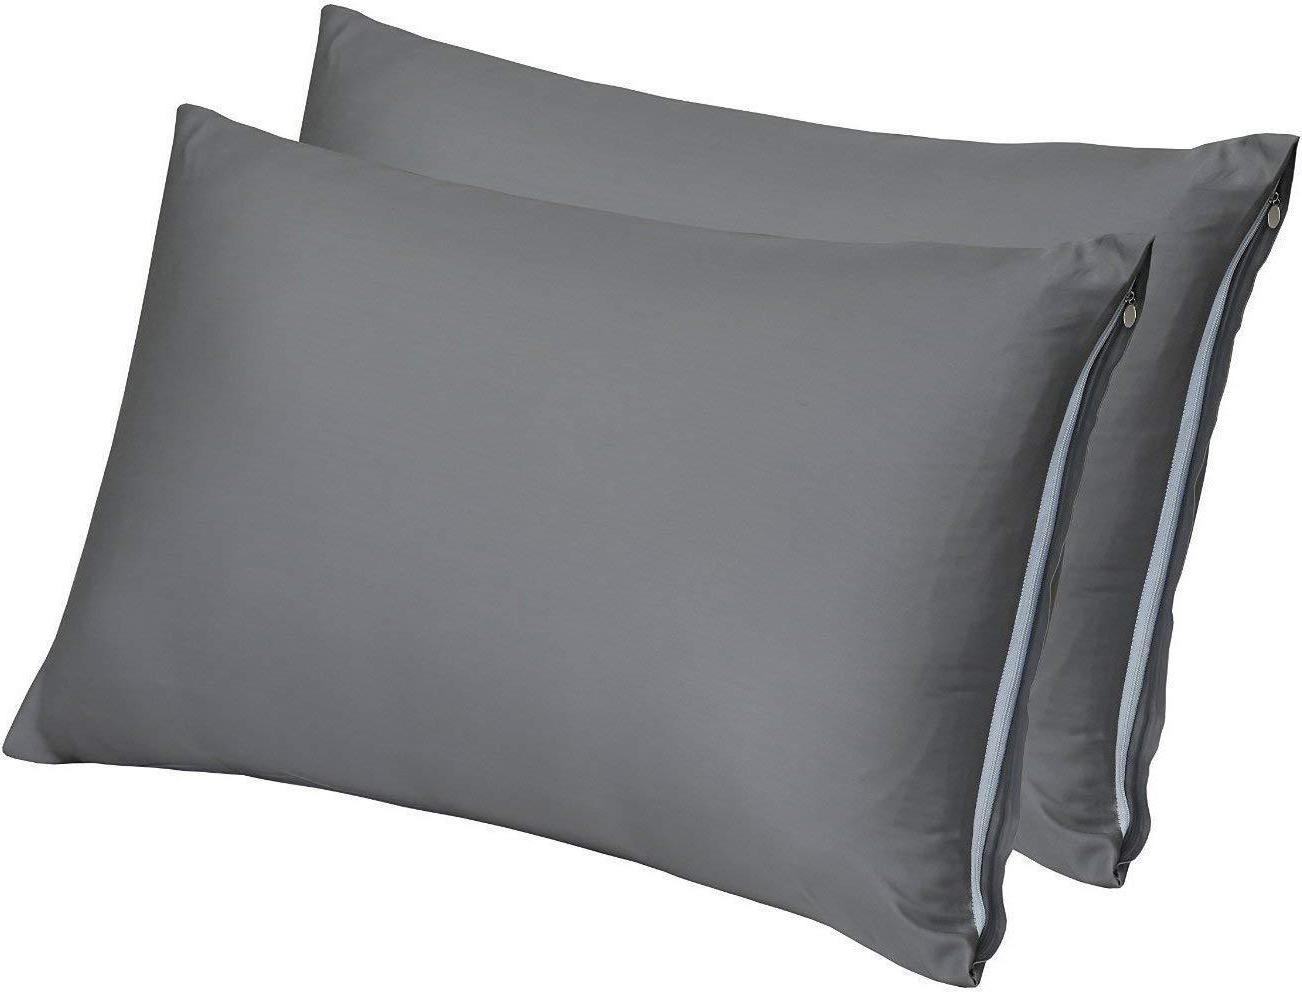 Pillow Cases Zippered Bamboo Sateen Pack of 2 by Utopia Bedd